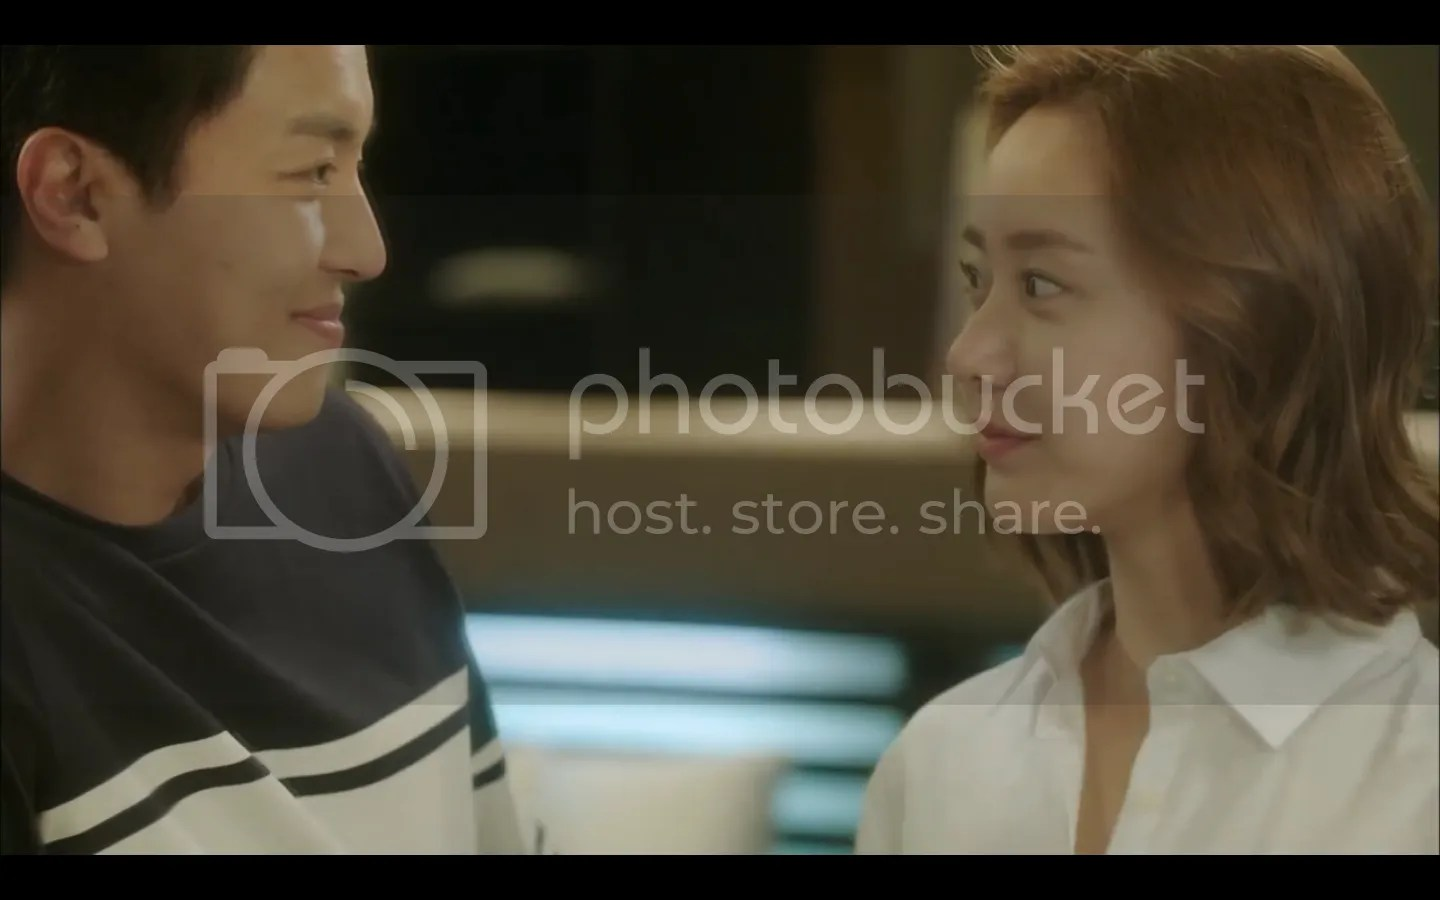 from Oscar watch marriage not dating ep 14